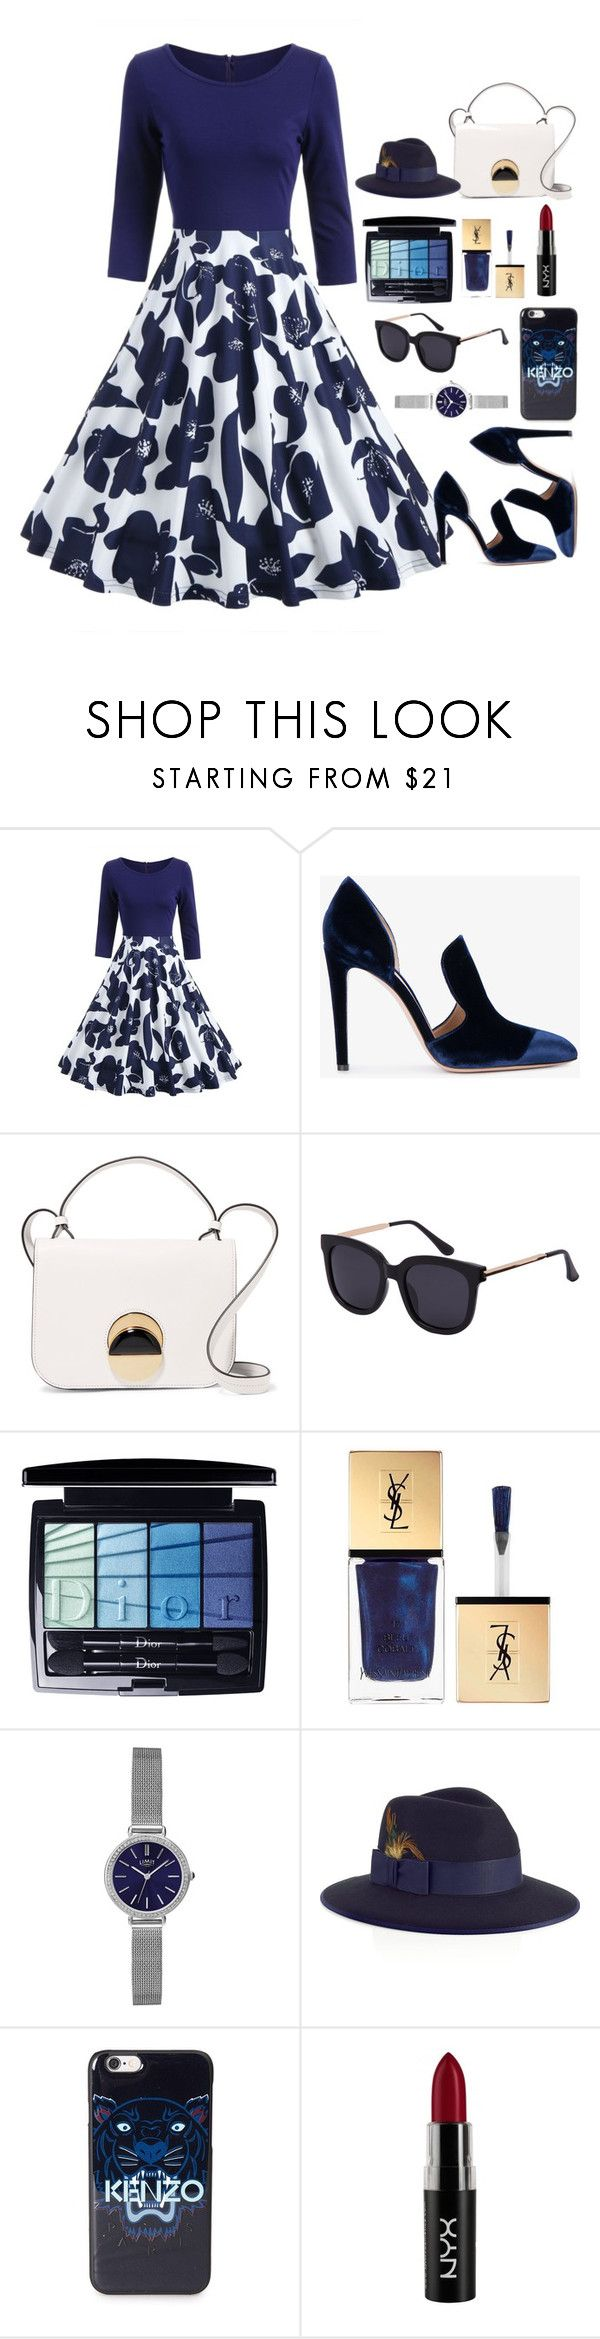 """""""VinTaGe fAsHion"""" by alonelover ❤ liked on Polyvore featuring Gianvito Rossi, Marni, Christian Dior, Yves Saint Laurent, Limit, Christys', Kenzo, NYX, vintage and vintagefashion"""